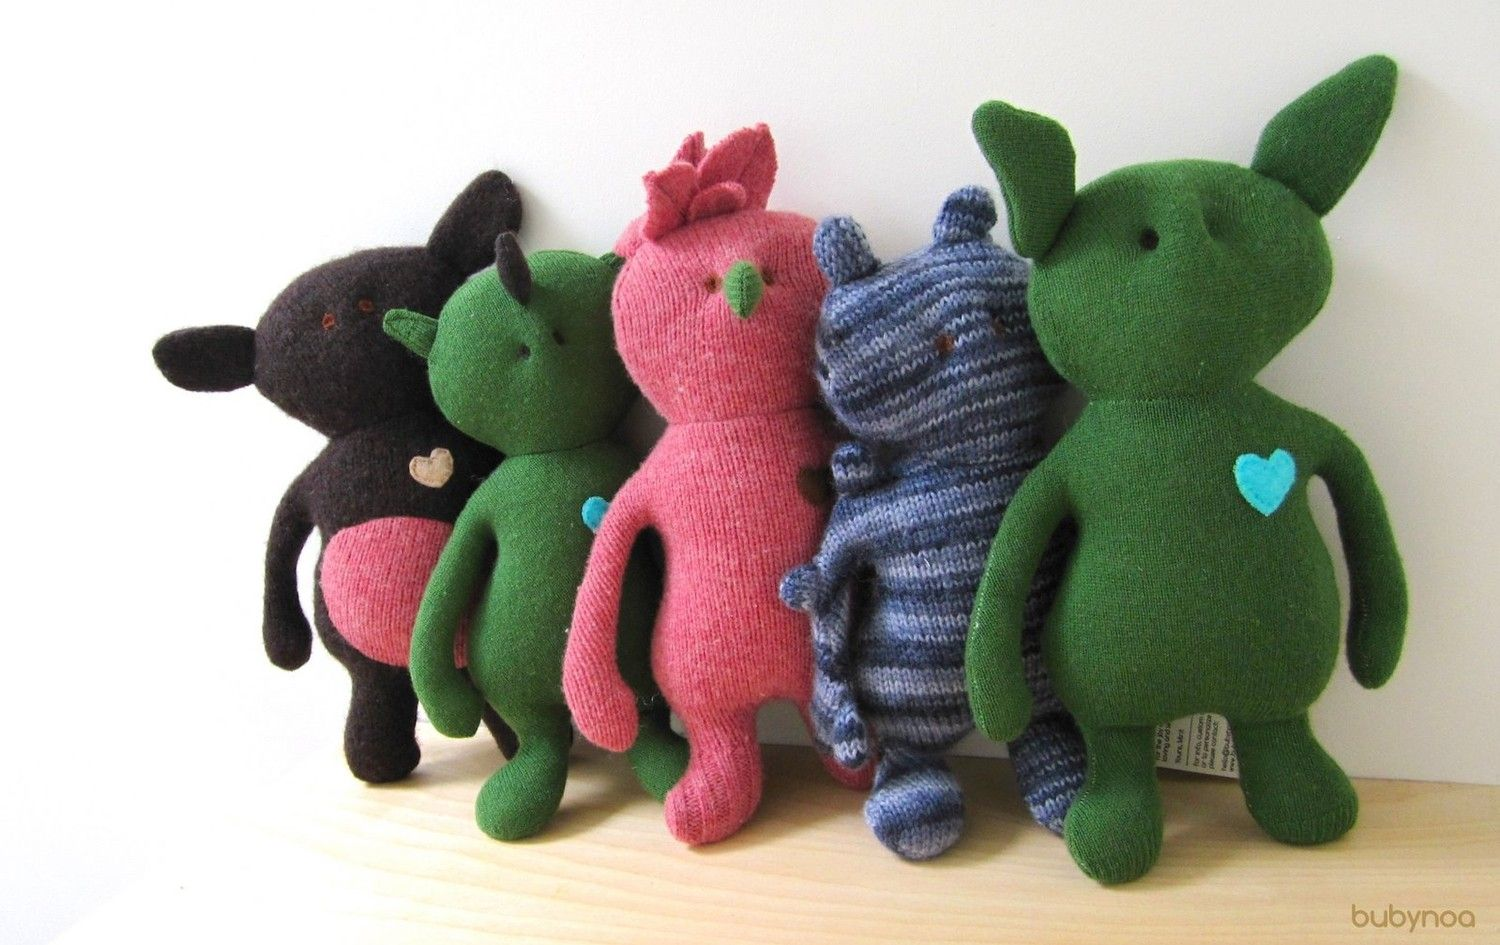 SALE Critter Doll eco friendly upcycled wool sweaters soft green monster OOAK. $35.00 USD, via Etsy.